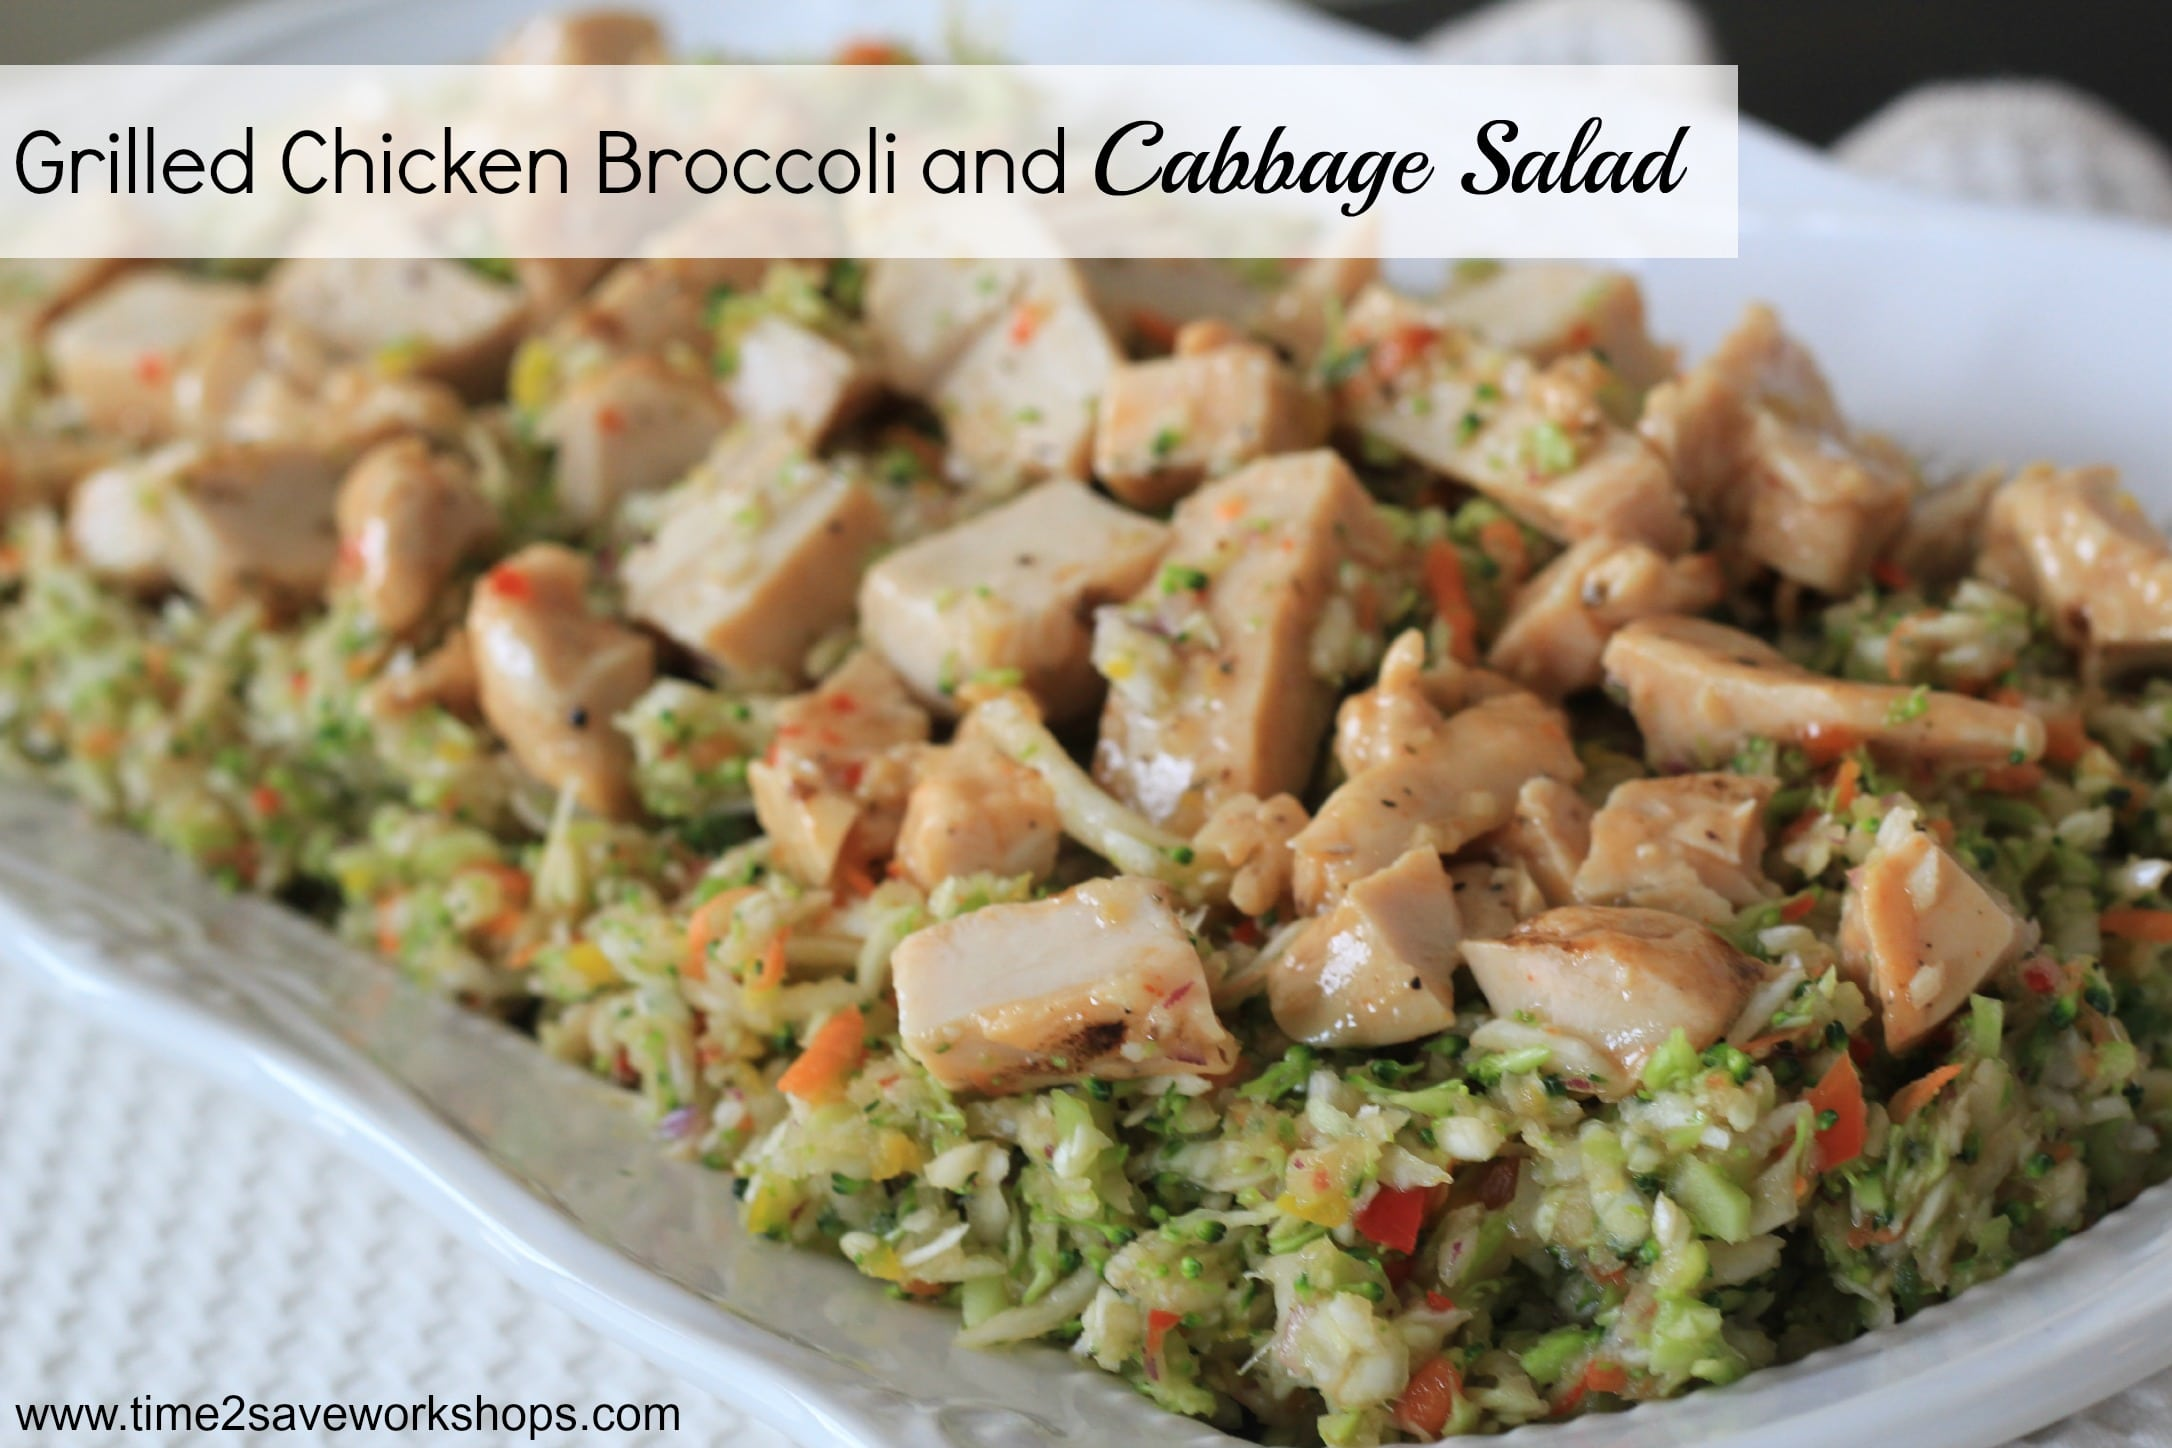 Grilled Chicken Broccoli & Cabbage Salad